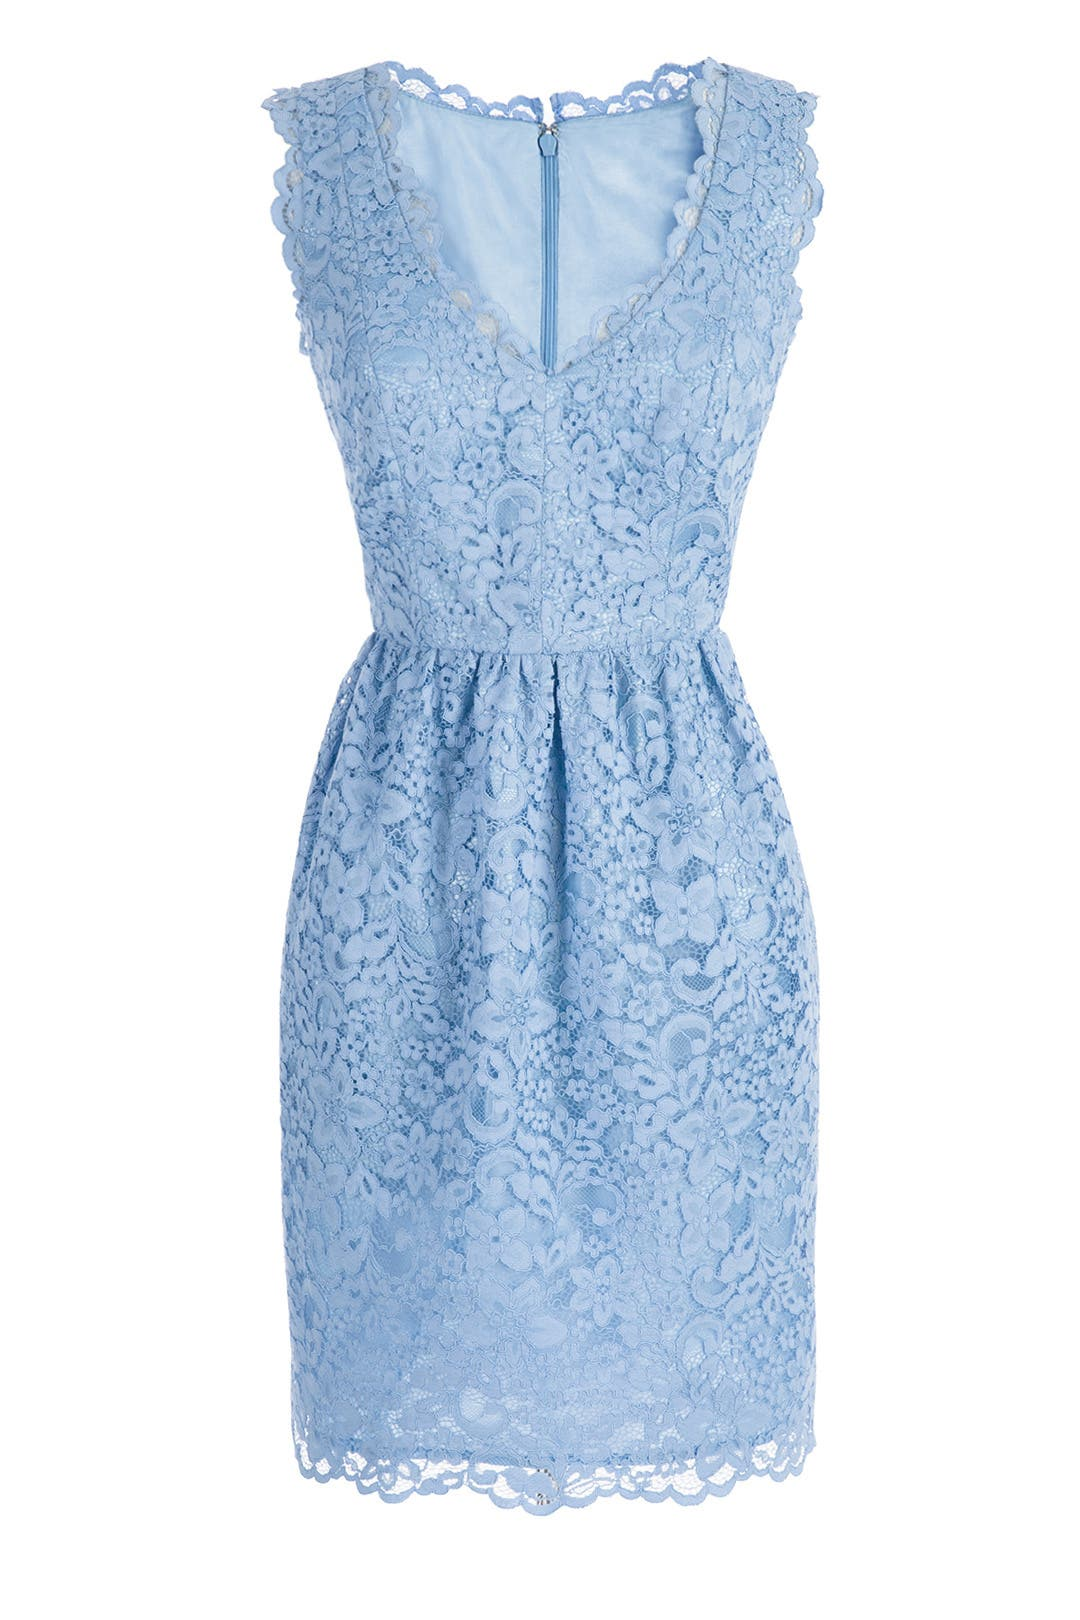 Periwinkle Lace Sierra Dress by Shoshanna for $55 - $75 | Rent the ...